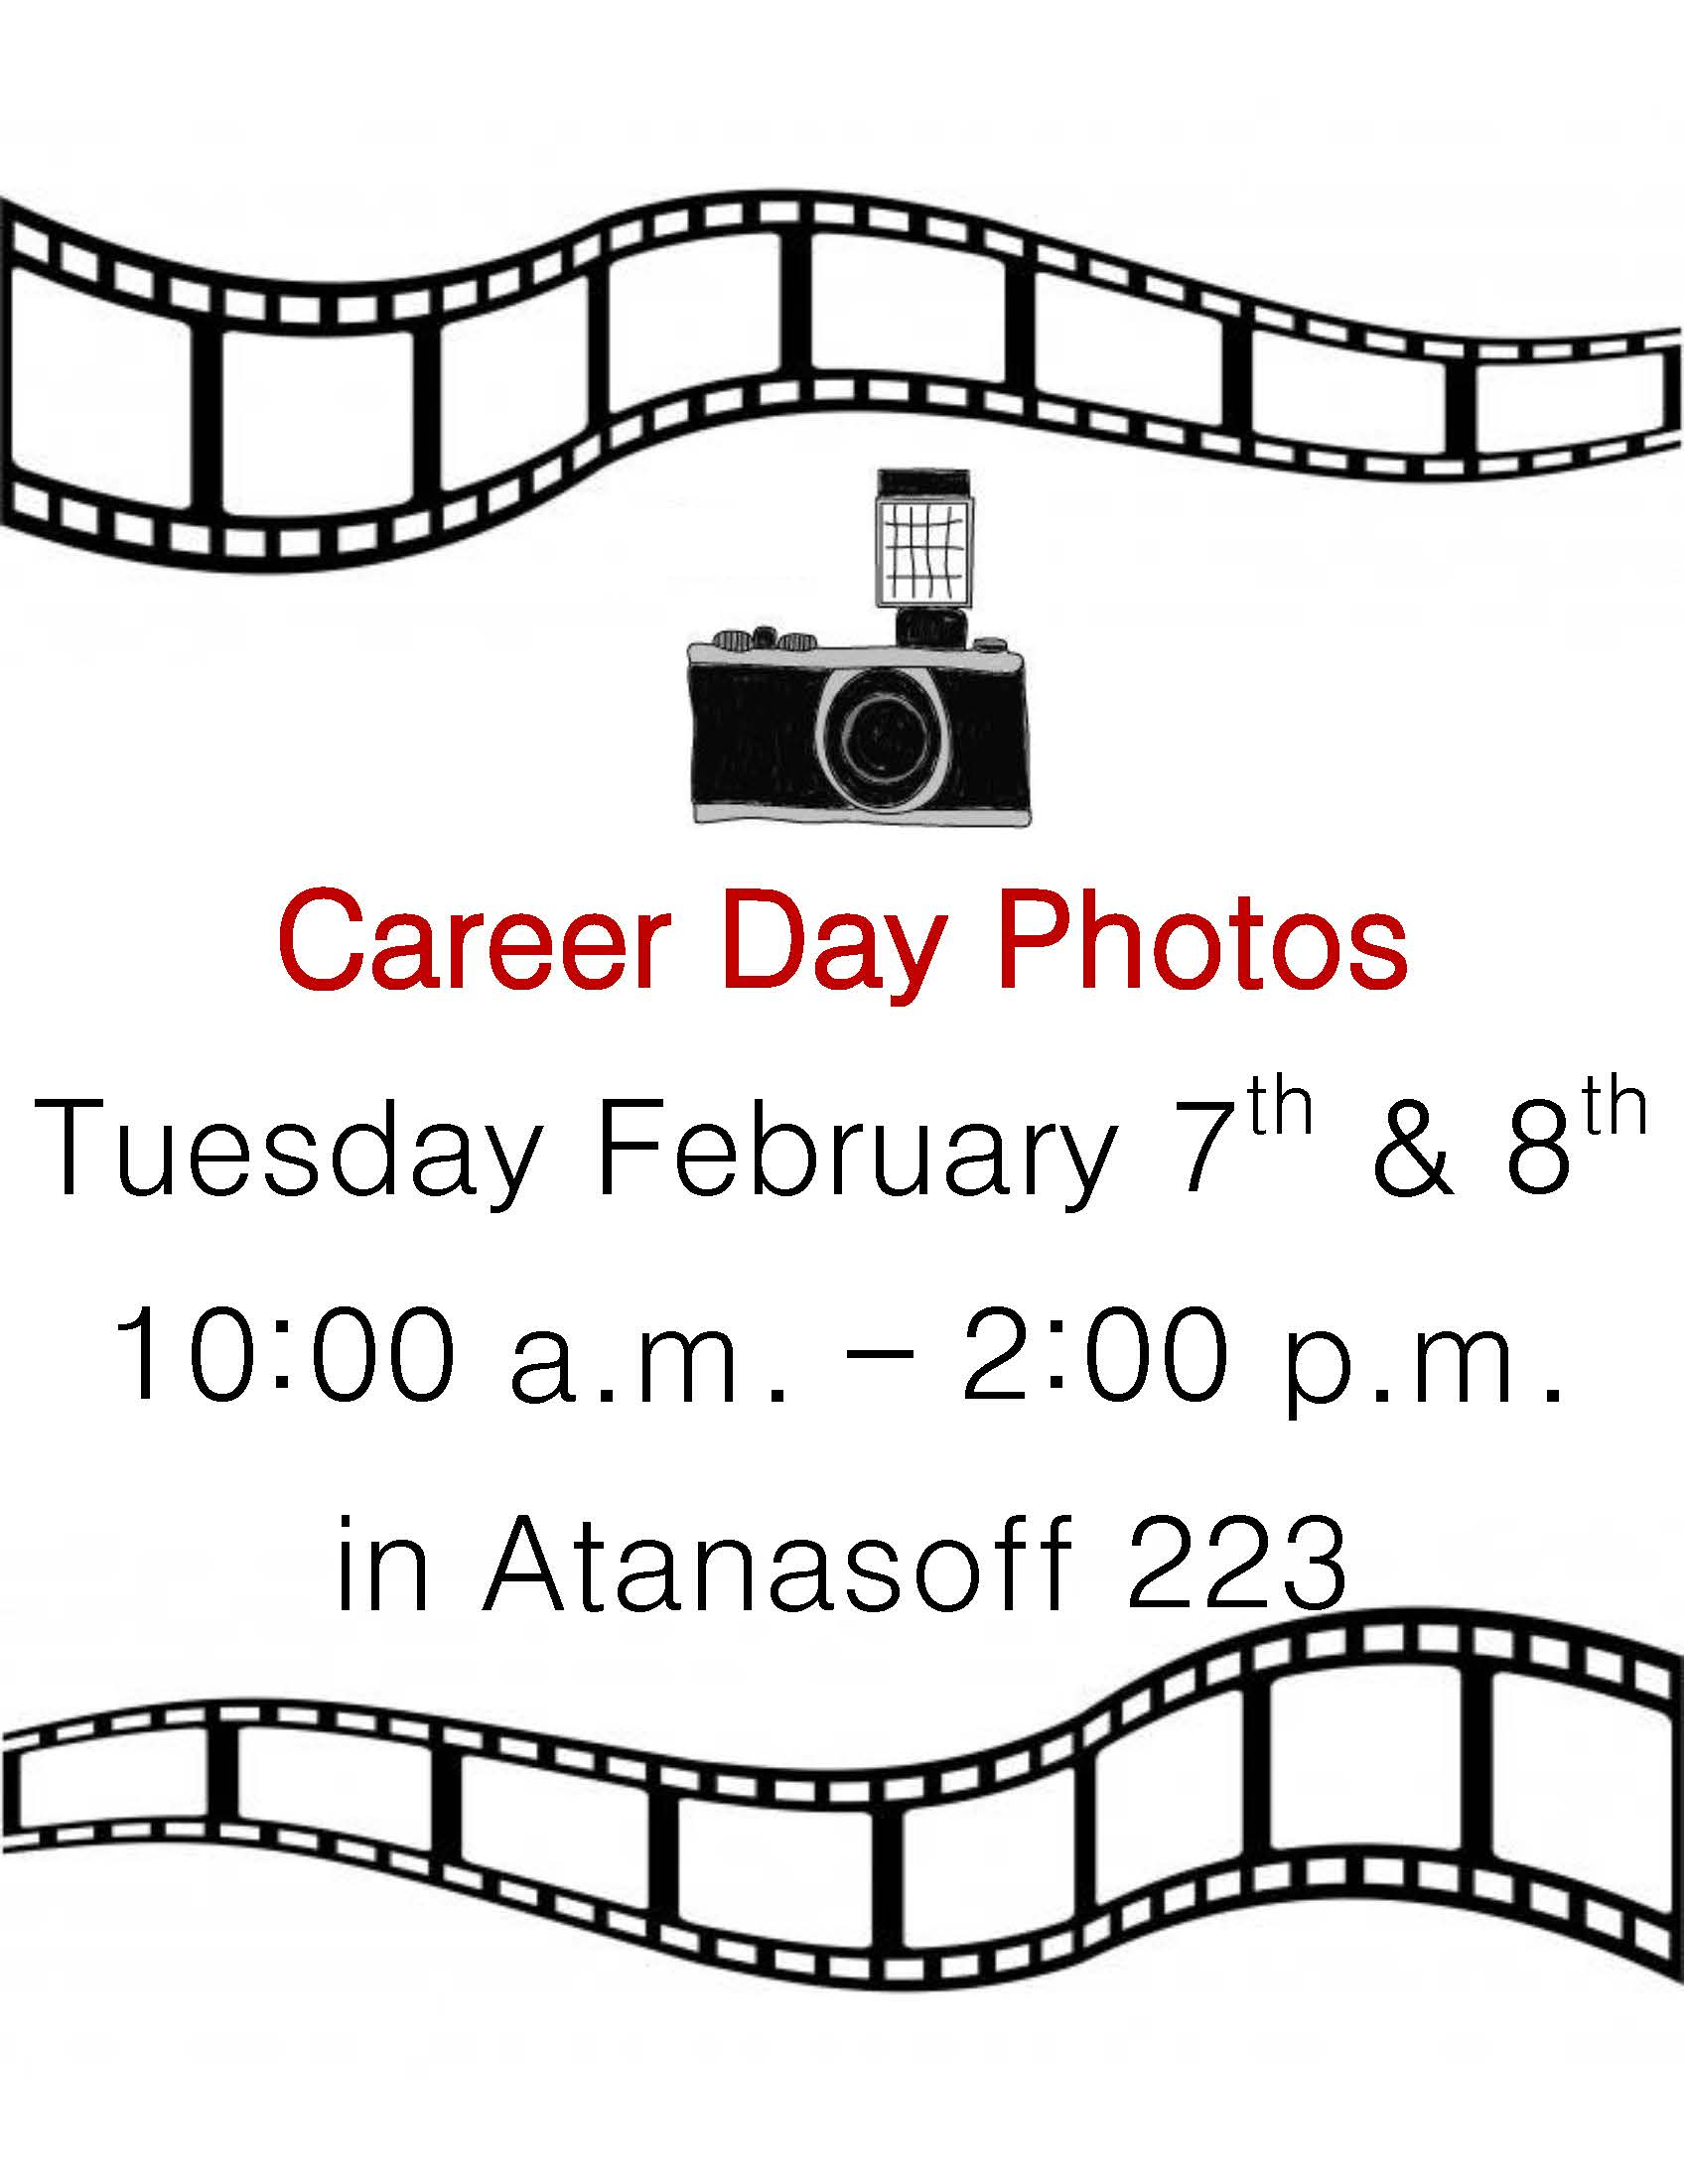 Career Day Photos Tuesday, February 7th and 8th